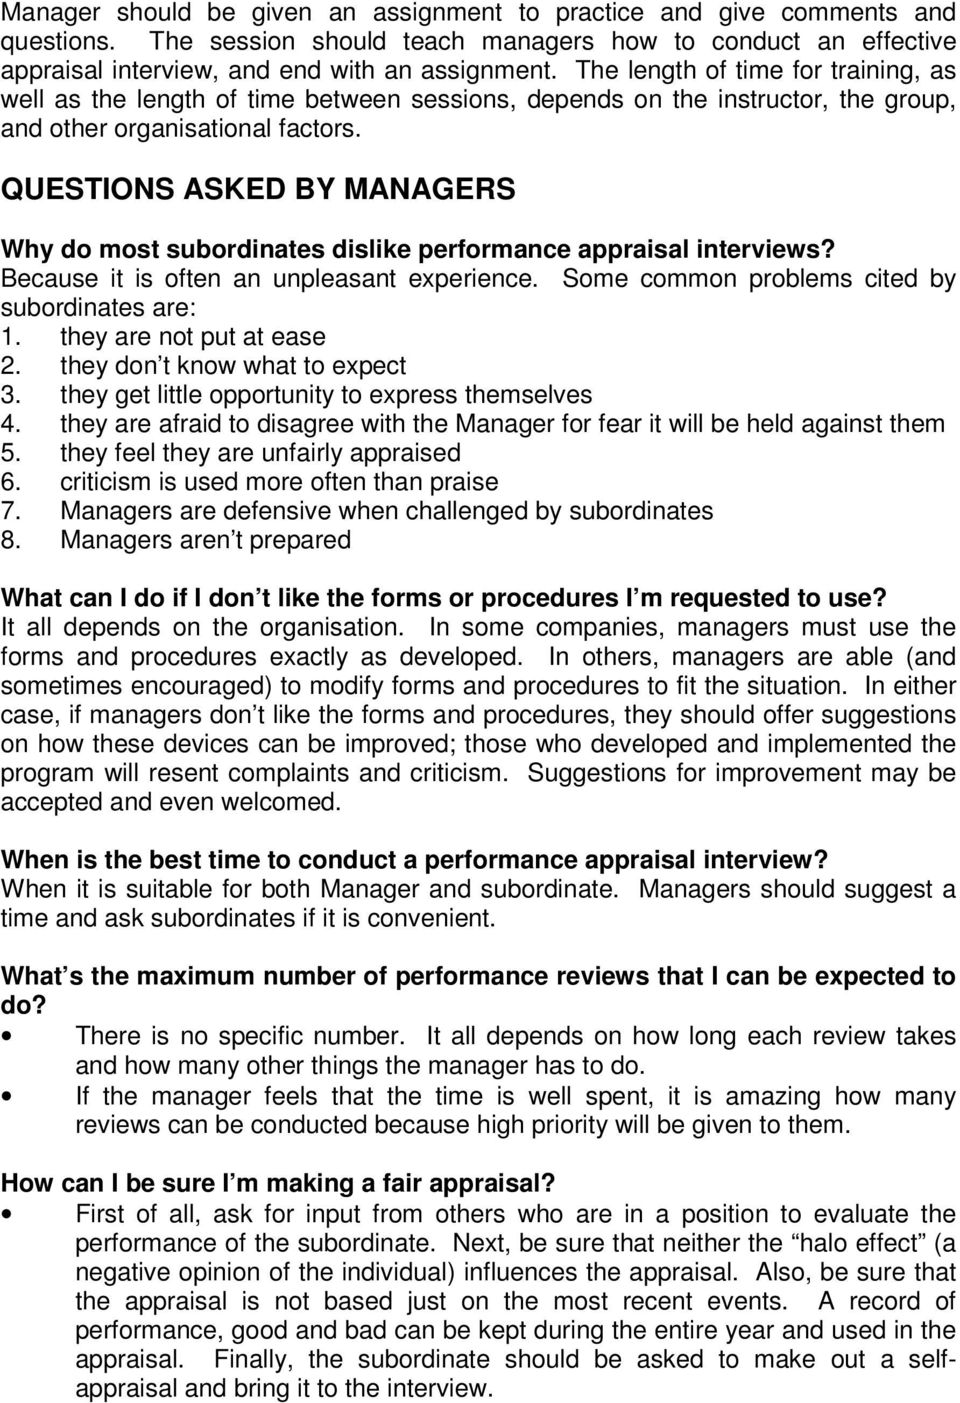 QUESTIONS ASKED BY MANAGERS Why do most subordinates dislike performance appraisal interviews? Because it is often an unpleasant experience. Some common problems cited by subordinates are: 1.